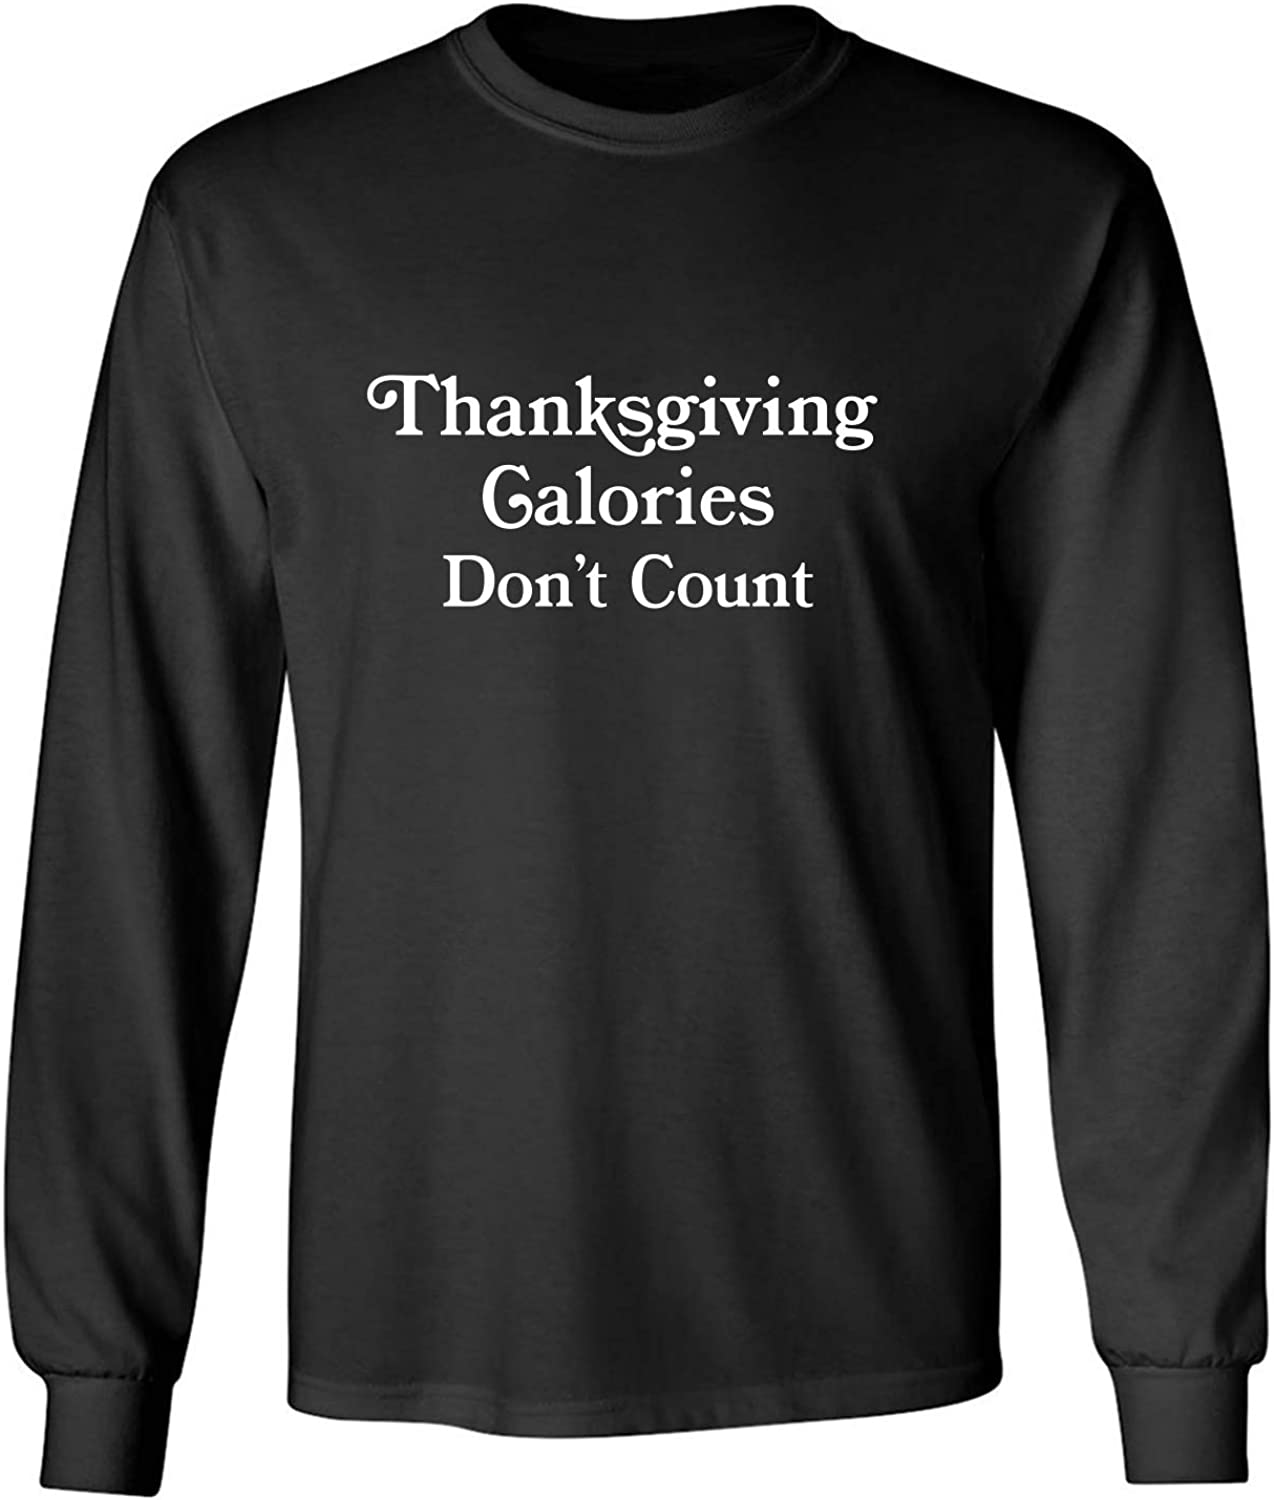 Thanksgiving Calories Don't Count Adult Long Sleeve T-Shirt in Black - XXXX-Large